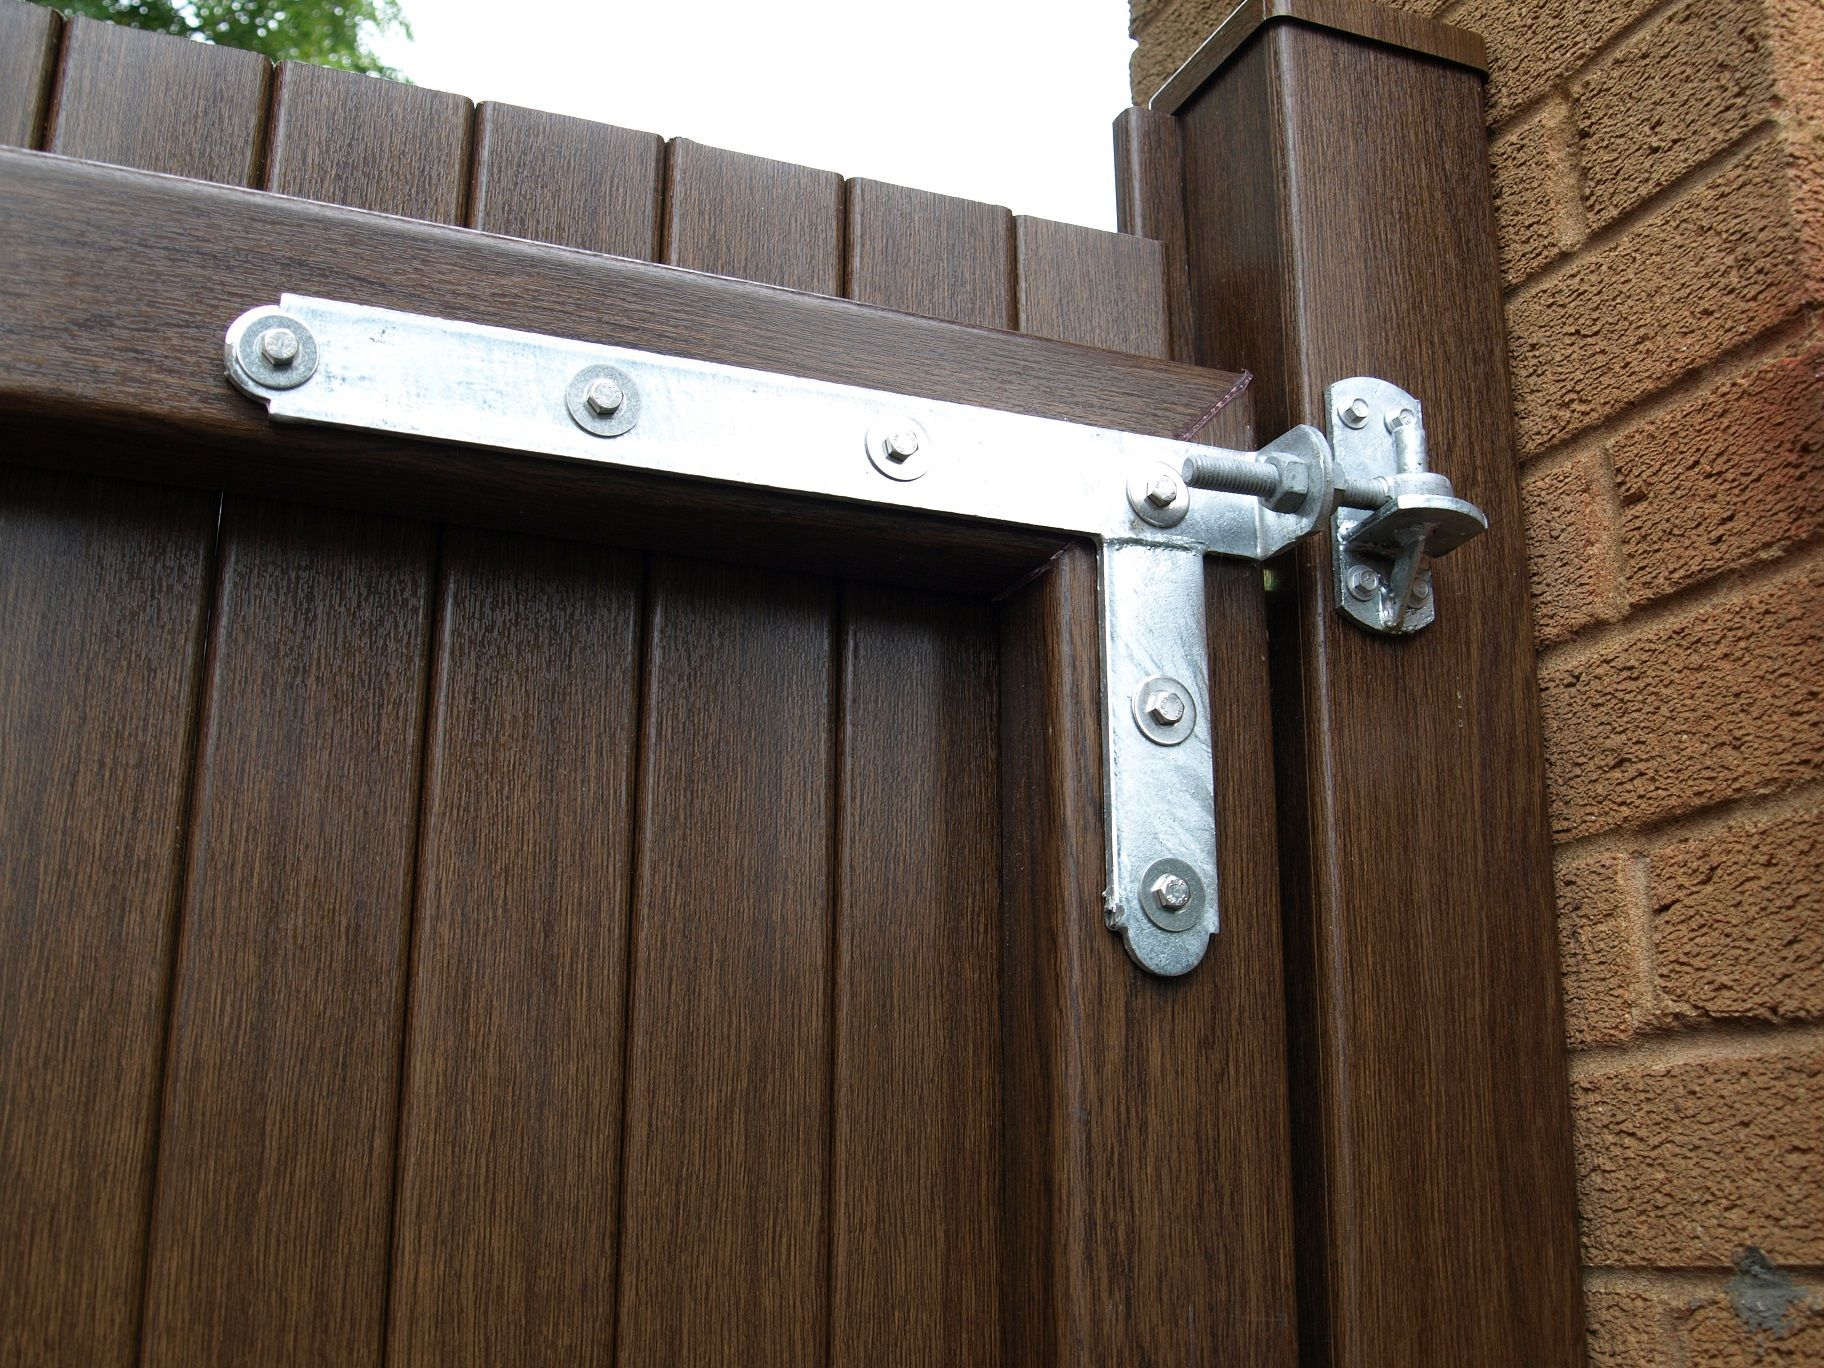 Fensys Upvc Plastic Gate System Heavy Duty Braced Galvanised Hinge With Stainless Steel Fixings Gate Hinges Heavy Duty Gate Hinges Hinges